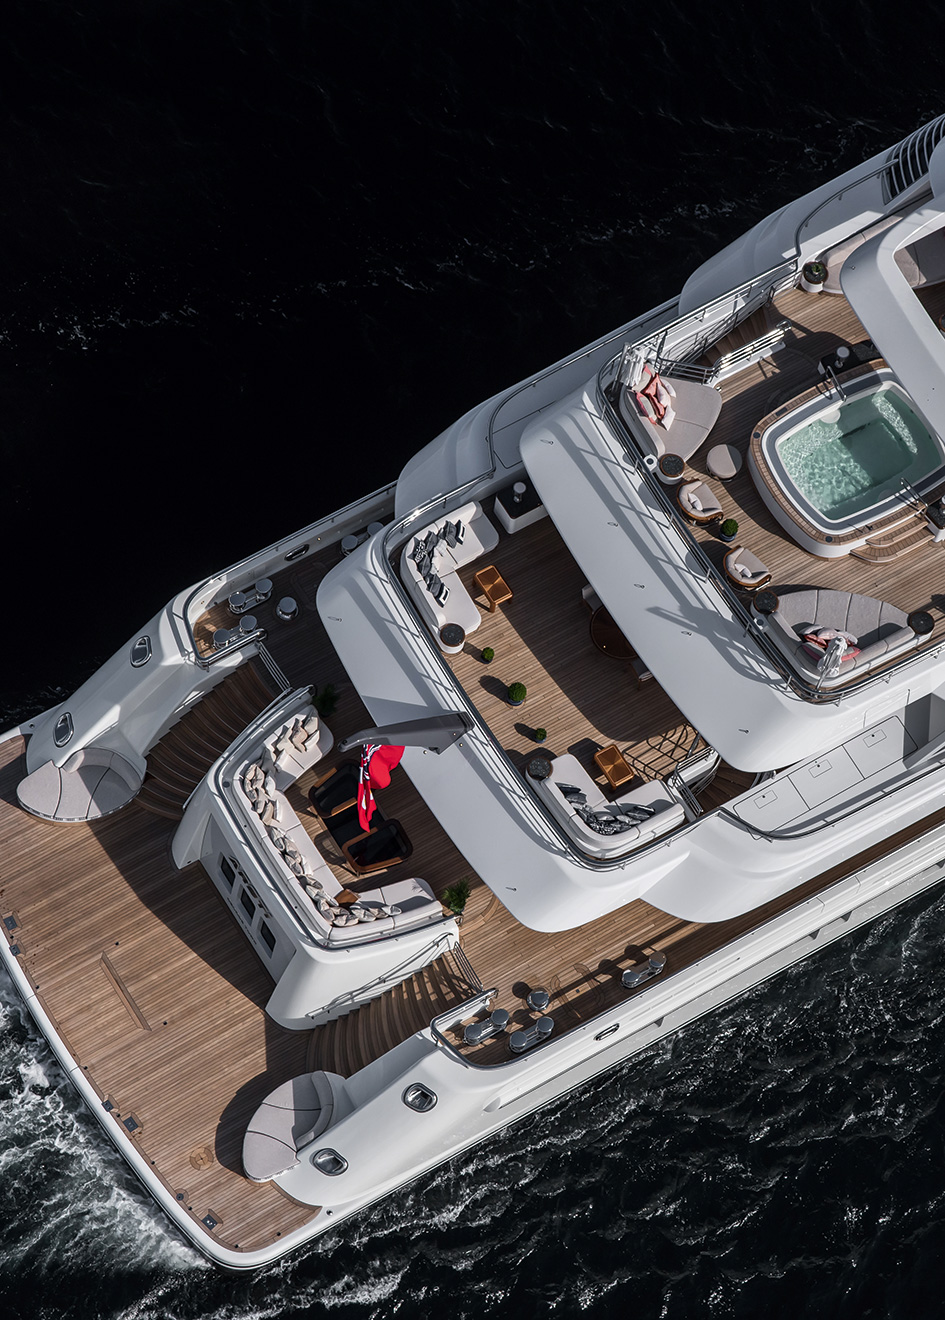 the-aft-decks-of-the-lurssen-superyacht-areti-credit-tom-van-oossanen